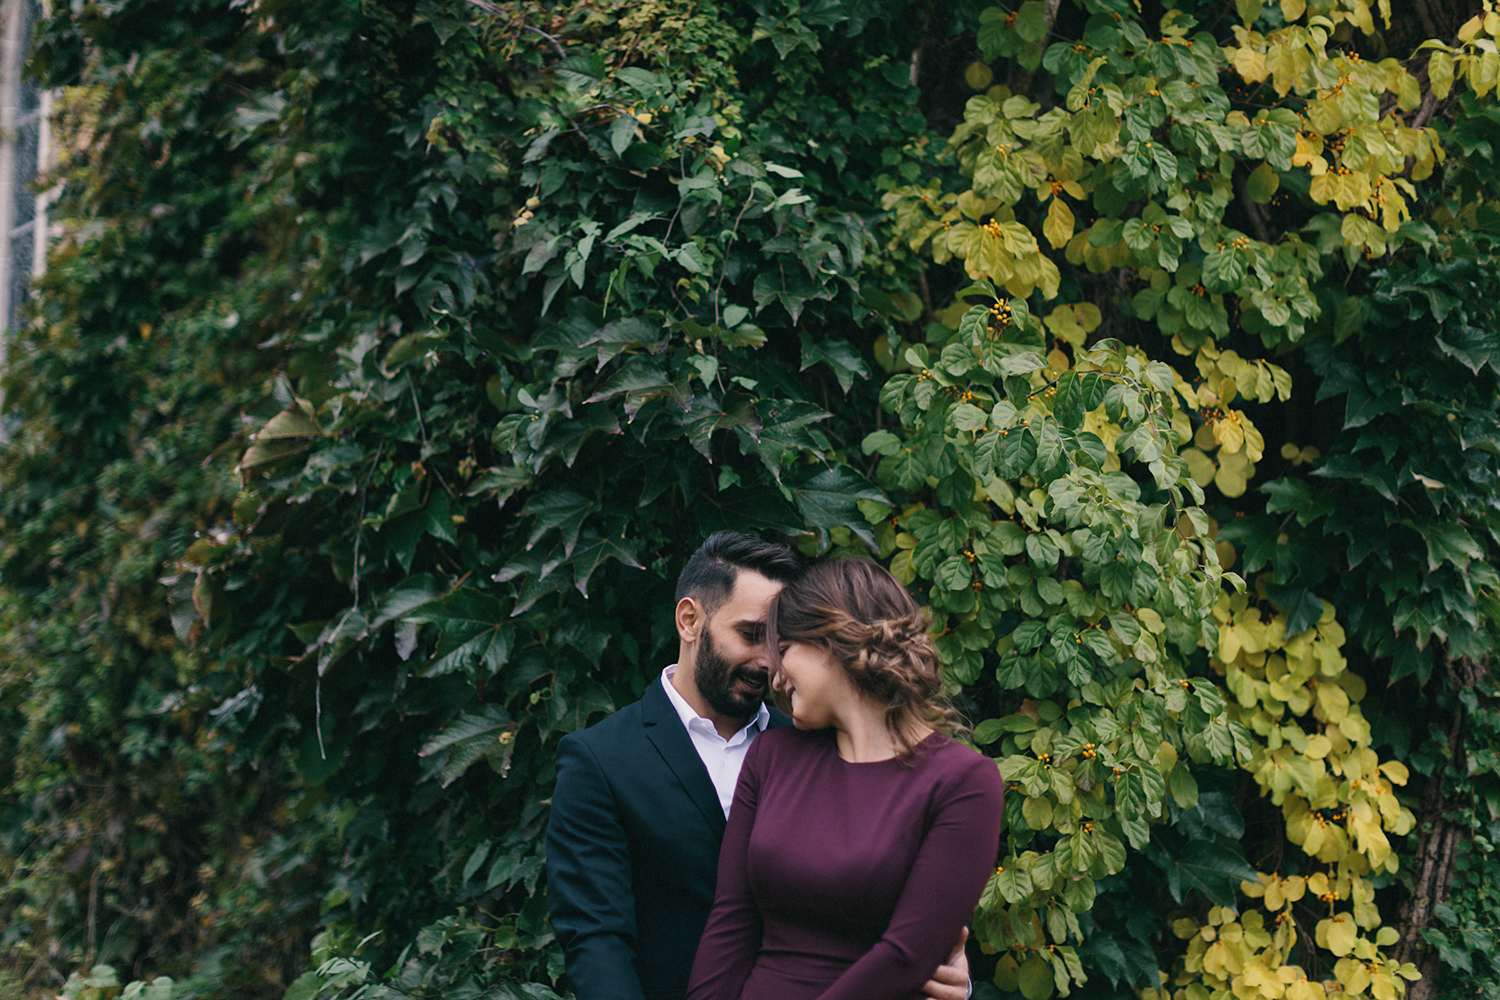 toronto-restaurant-elopement-small-wedding-intimate-portraits-of-bride-in-purple-jumpsuit-old-ivy-buildings.jpg